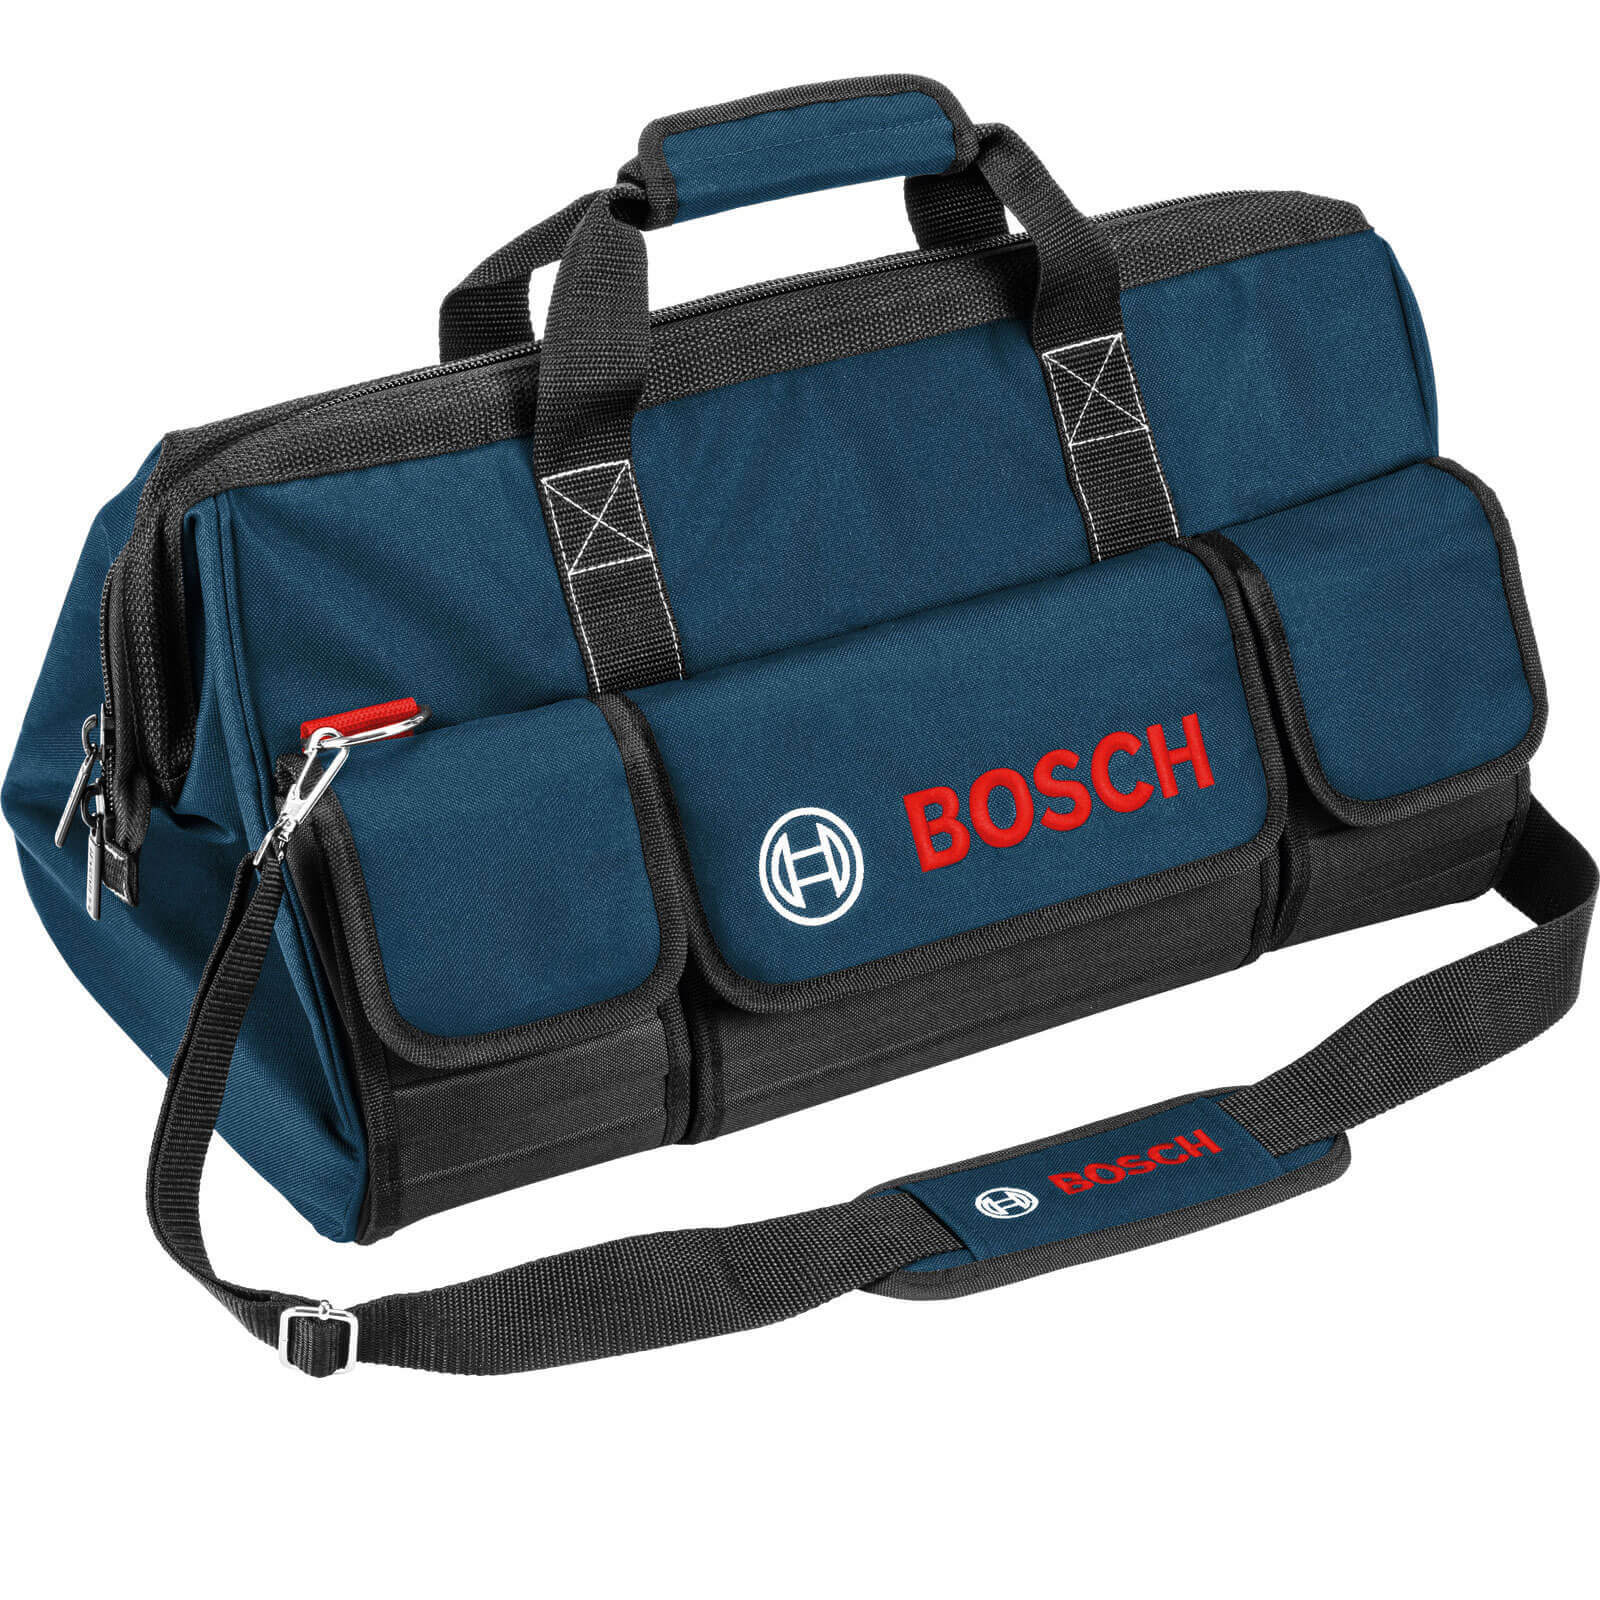 bosch tool bag shop for cheap hand tools and save online. Black Bedroom Furniture Sets. Home Design Ideas